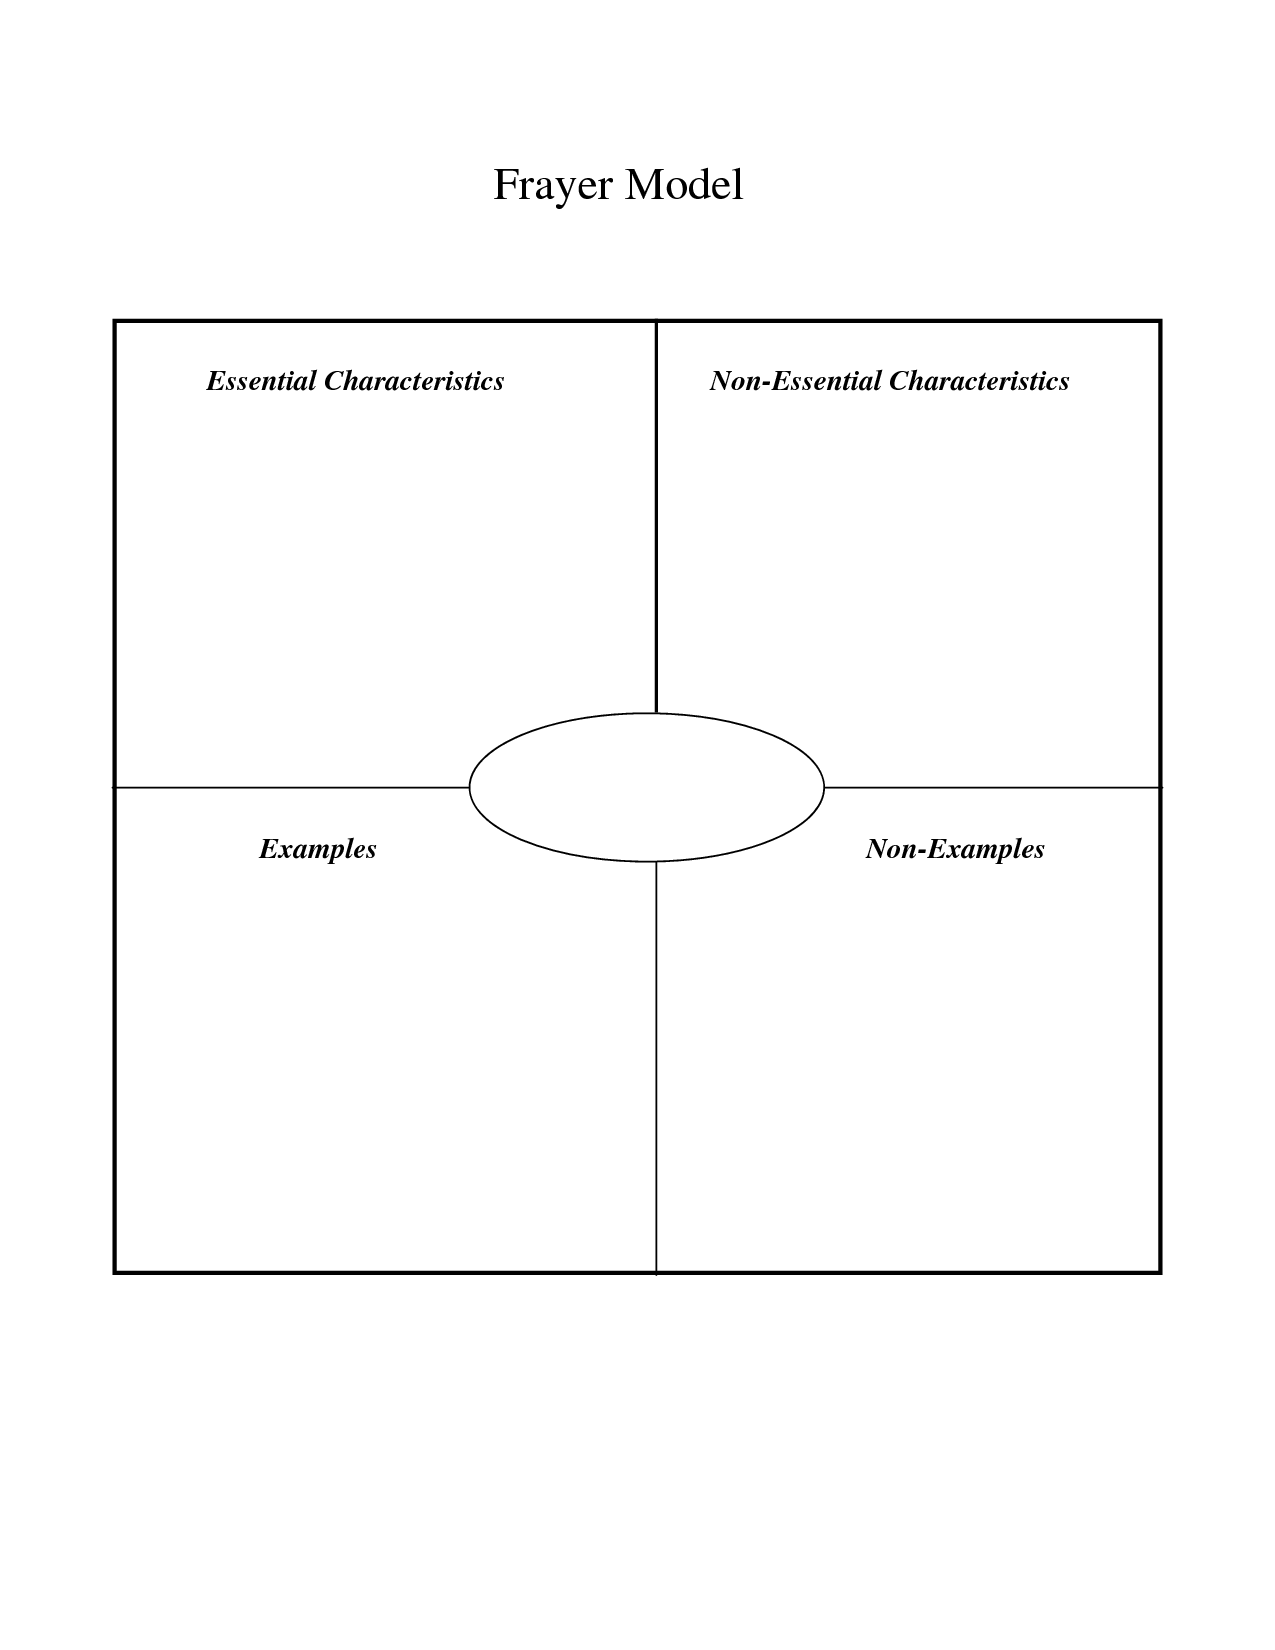 Blank Frayer Model Graphic Organizer